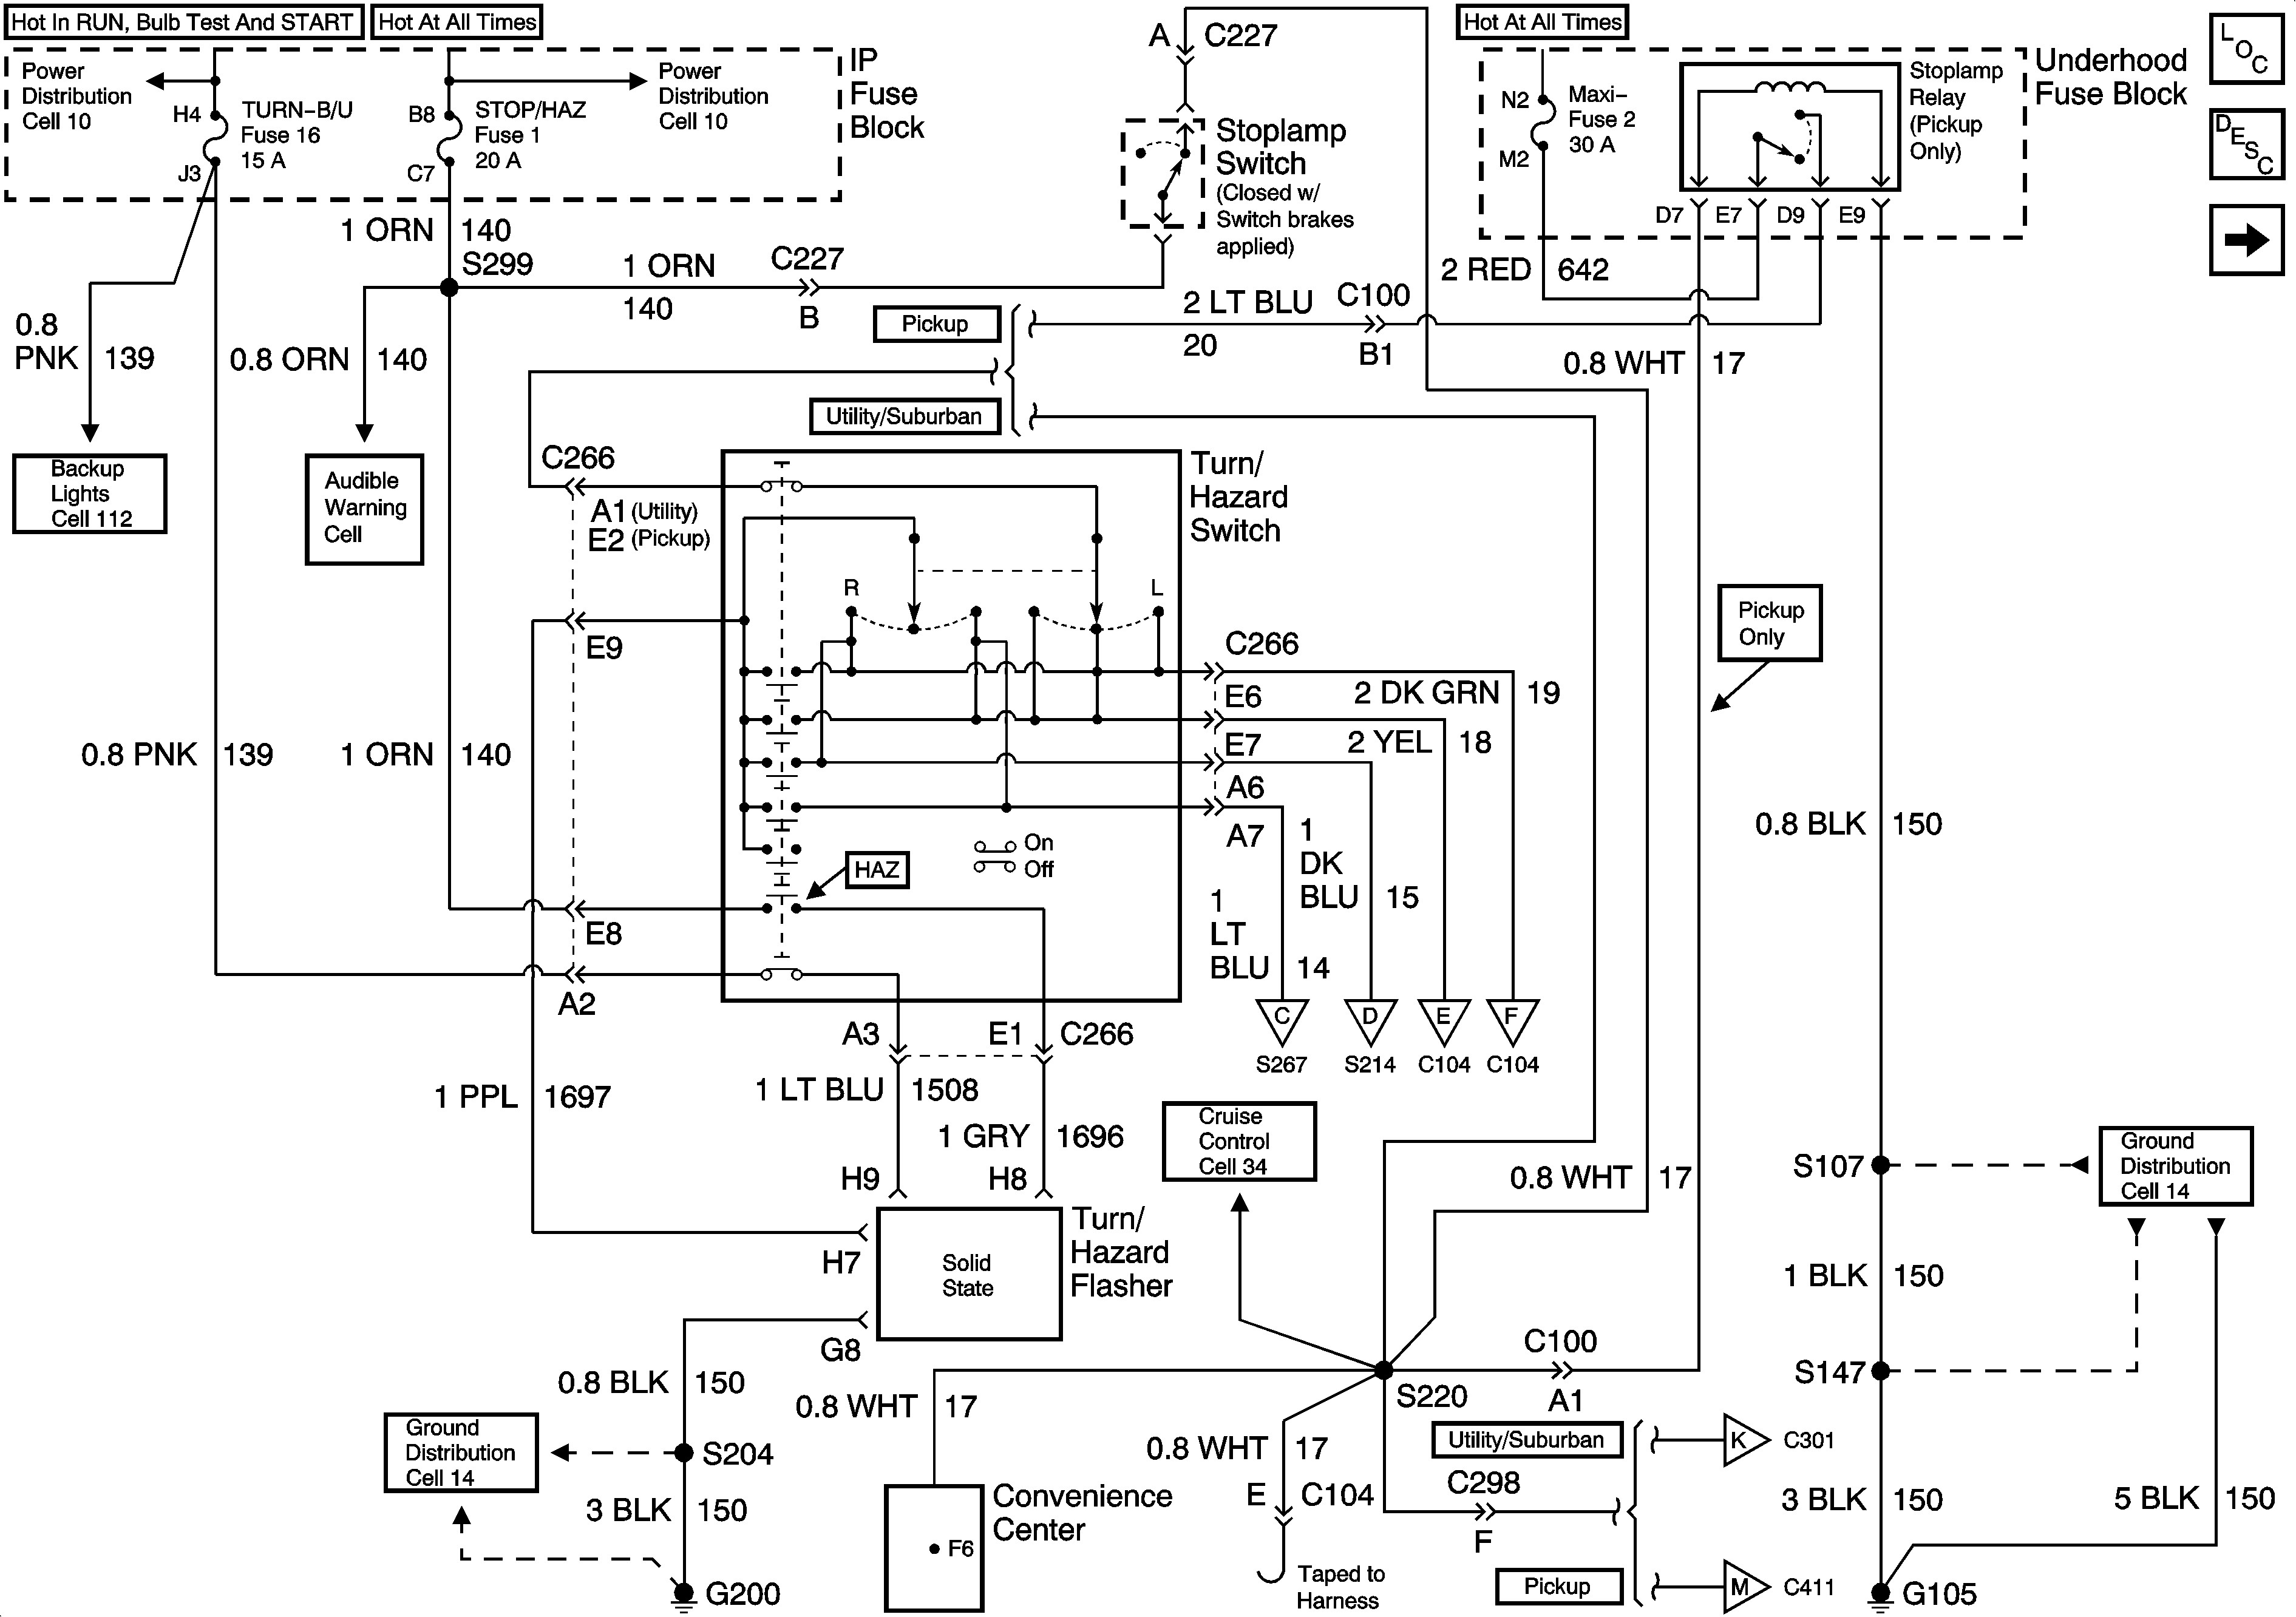 1999 chevy c6500 wiring diagram - wiring diagram brief-data -  brief-data.disnar.it  disnar.it